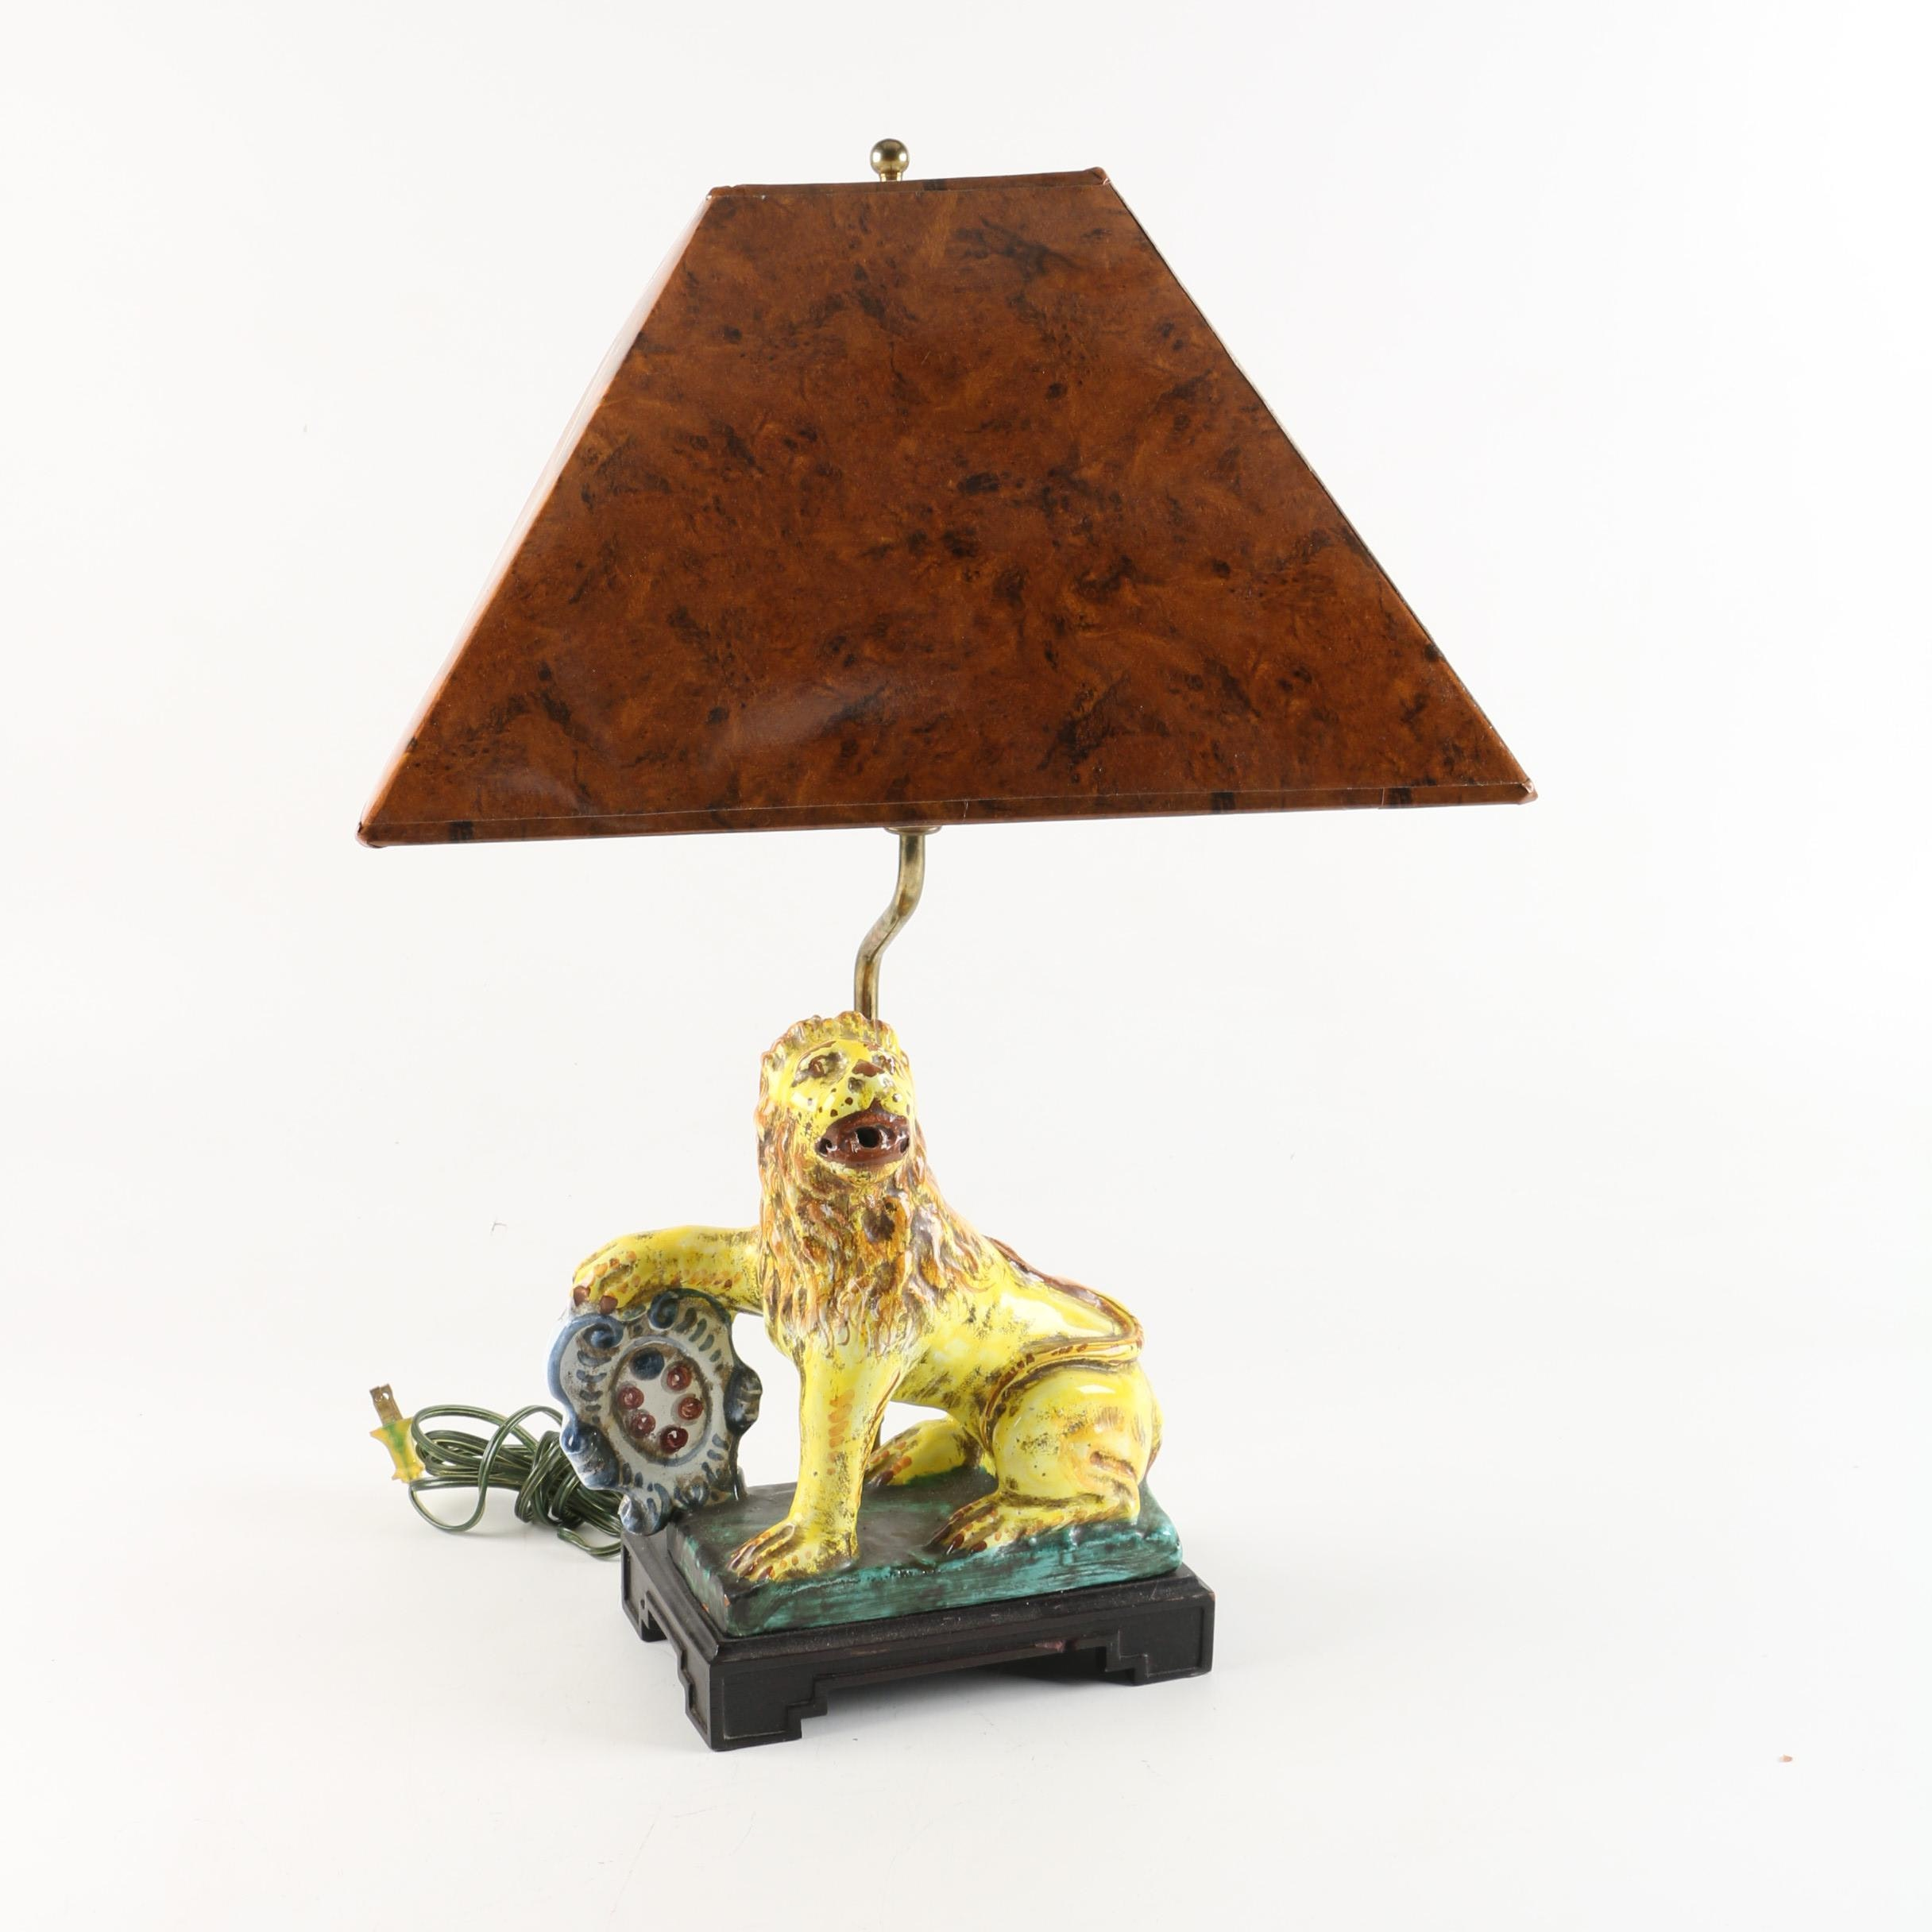 Vintage Ceramic Lion Figural Table Lamp with Tortoiseshell Print Shade